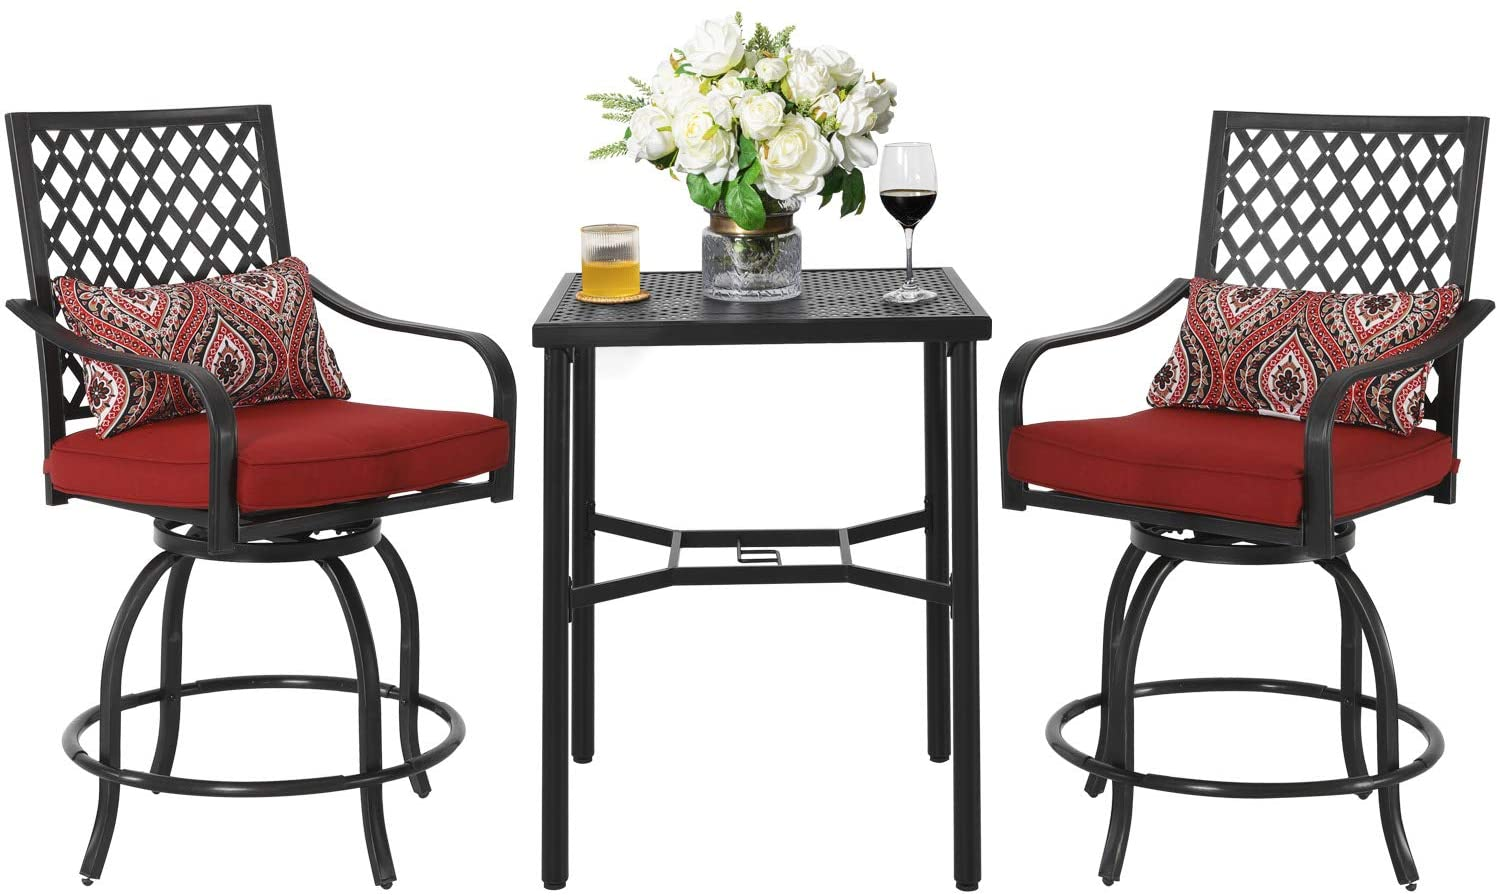 patio bar stools and table set 3 piece outdoor bistro furniture set with cushions for balcony yards porch black2